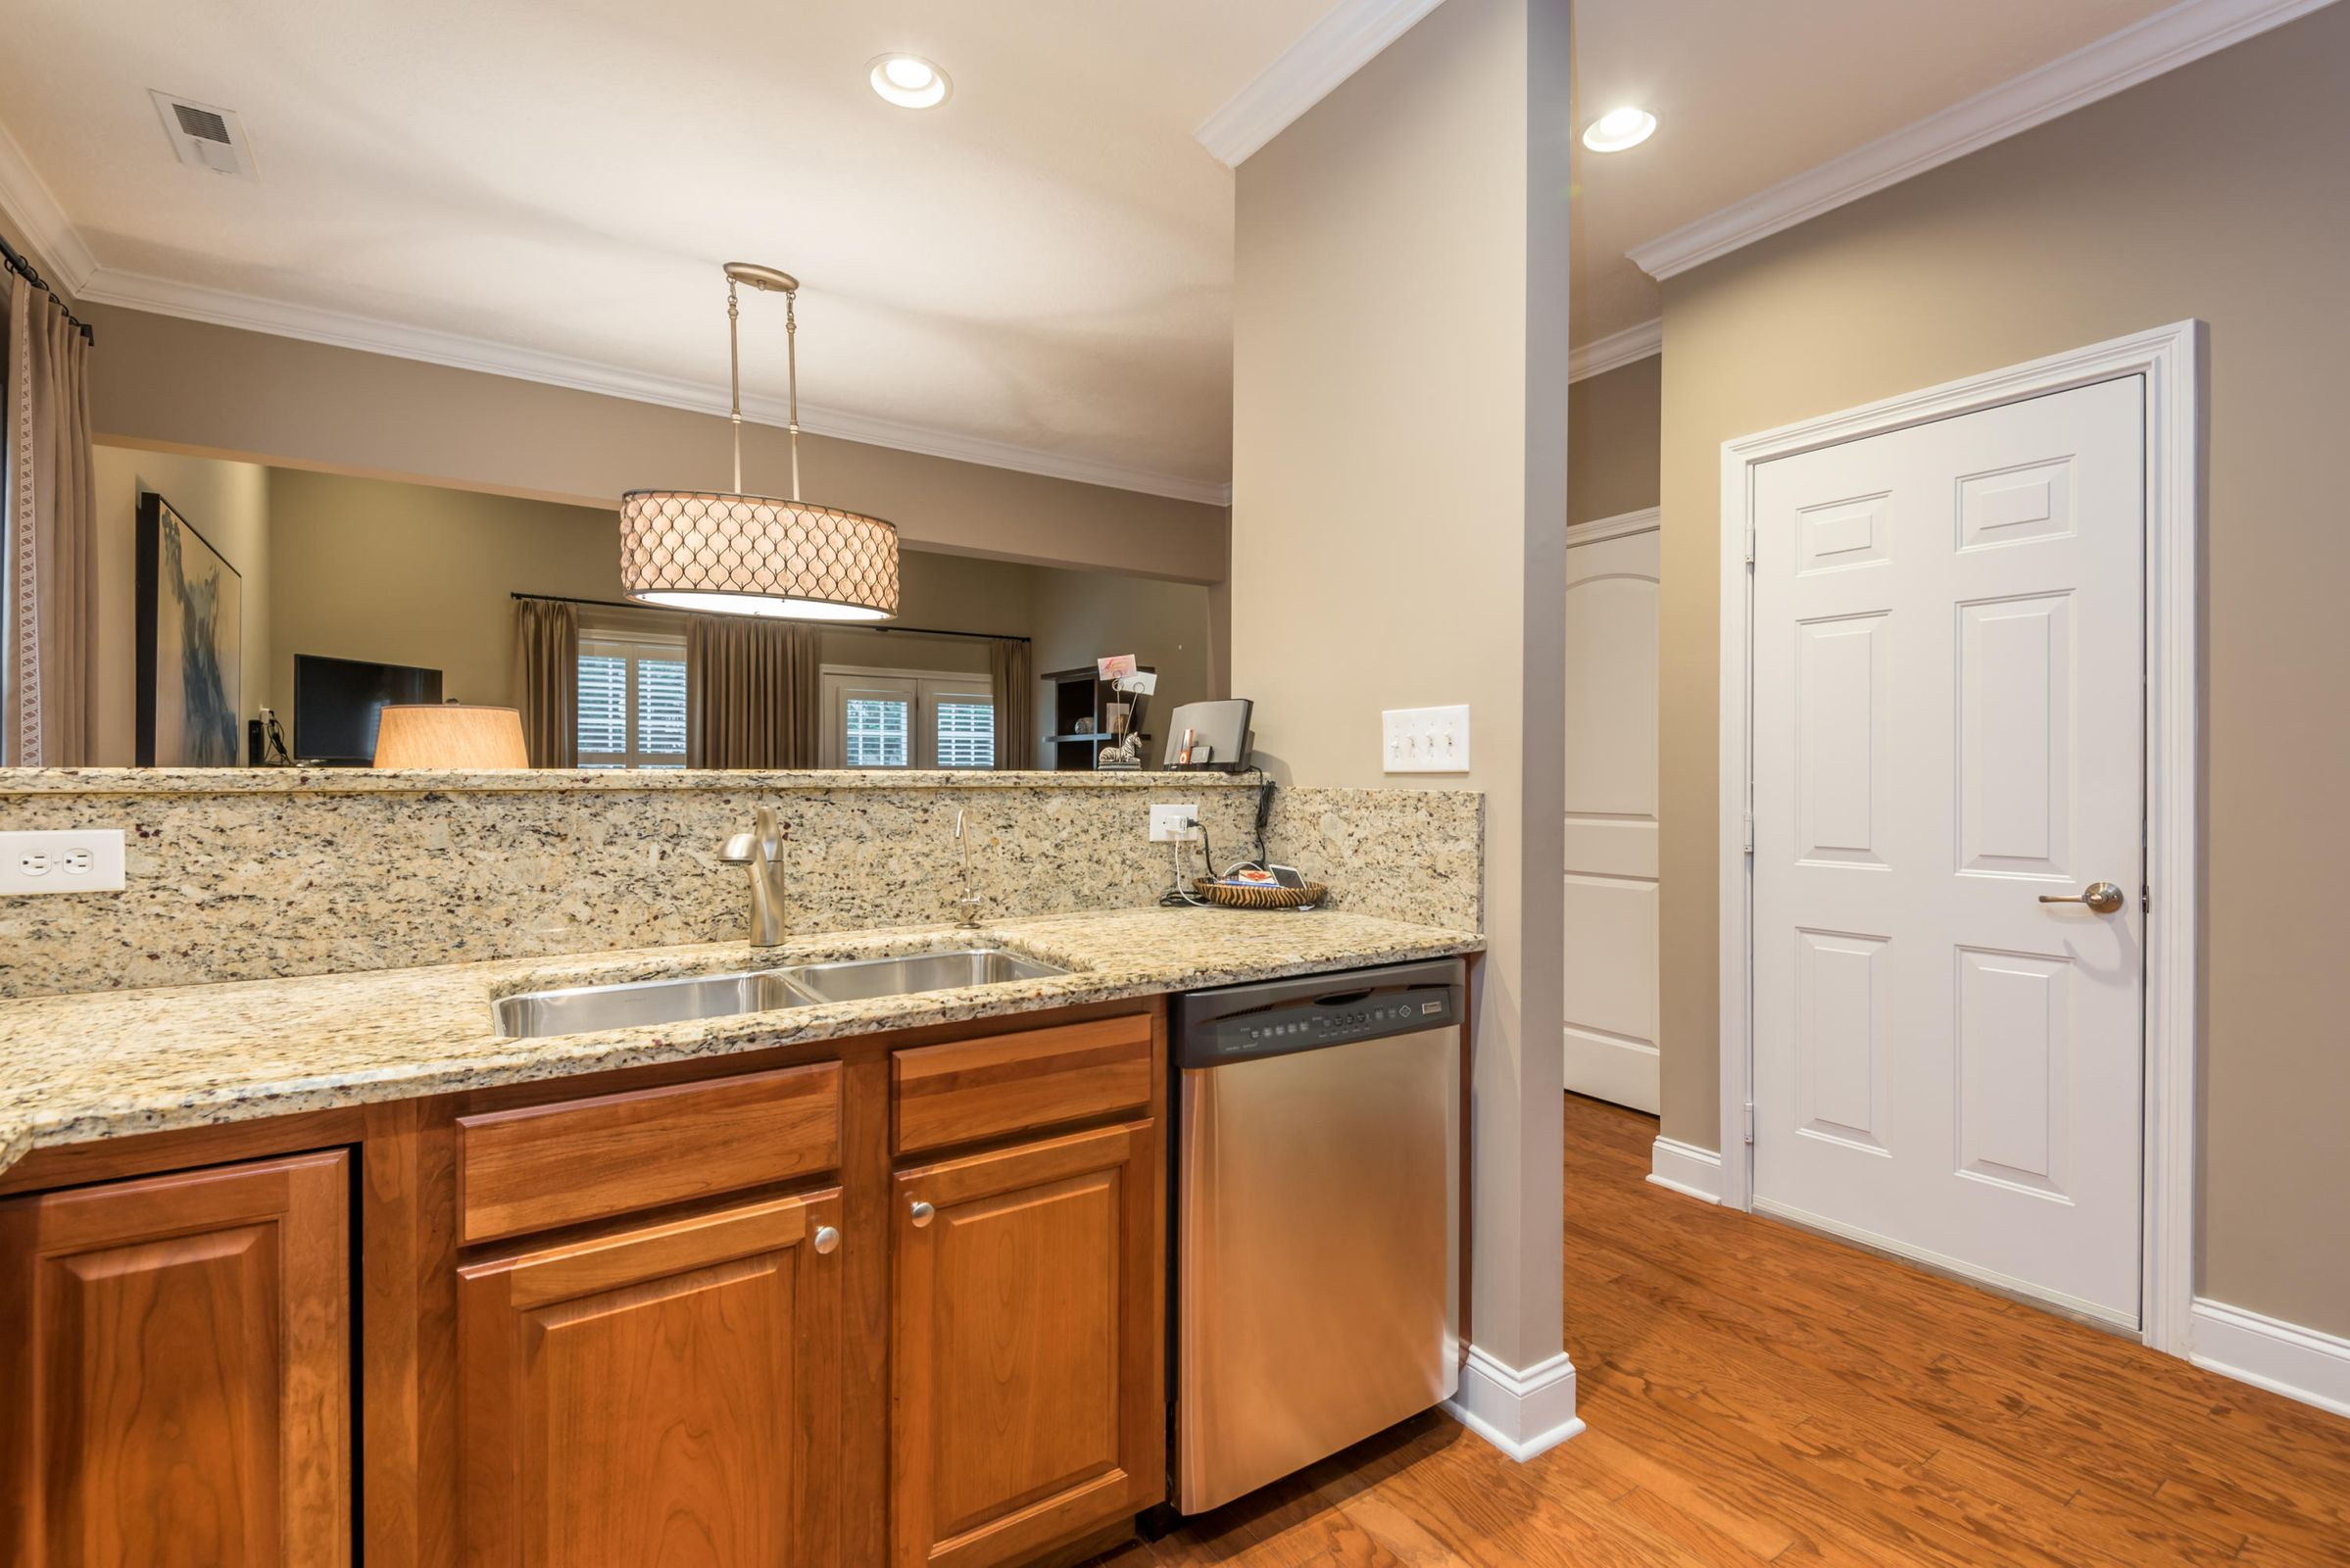 14 kitchen sink to living room